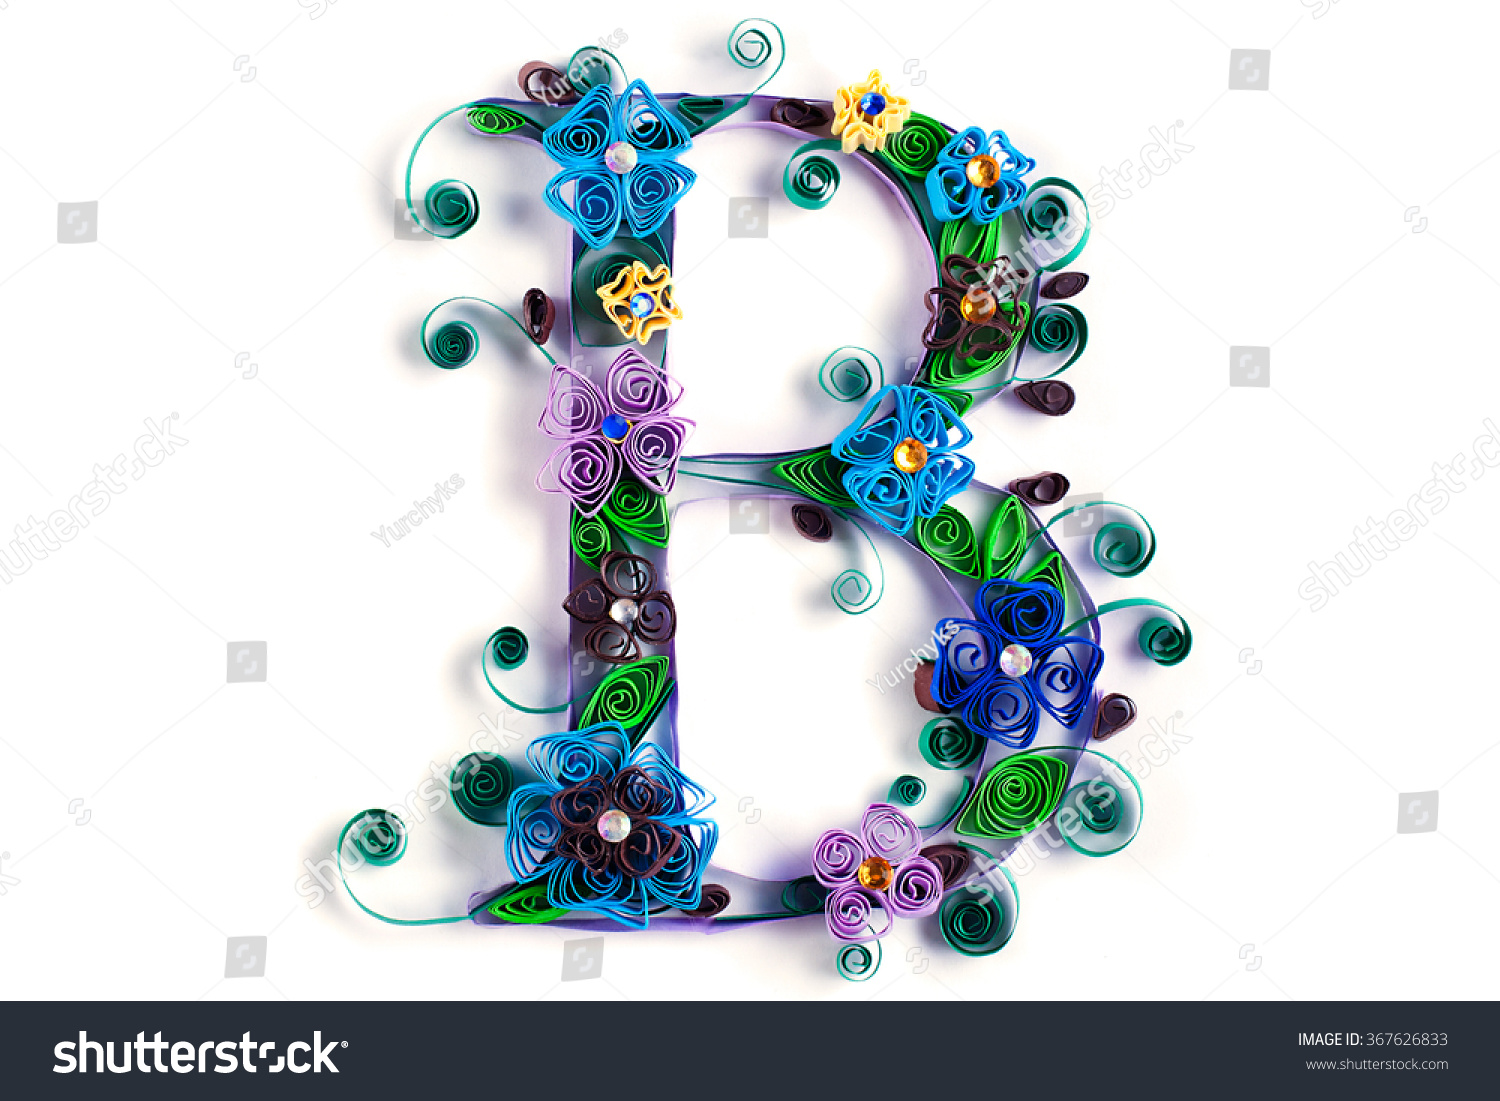 Spring Theme Quilling Letter Quilling Fonts Stock Photo Royalty